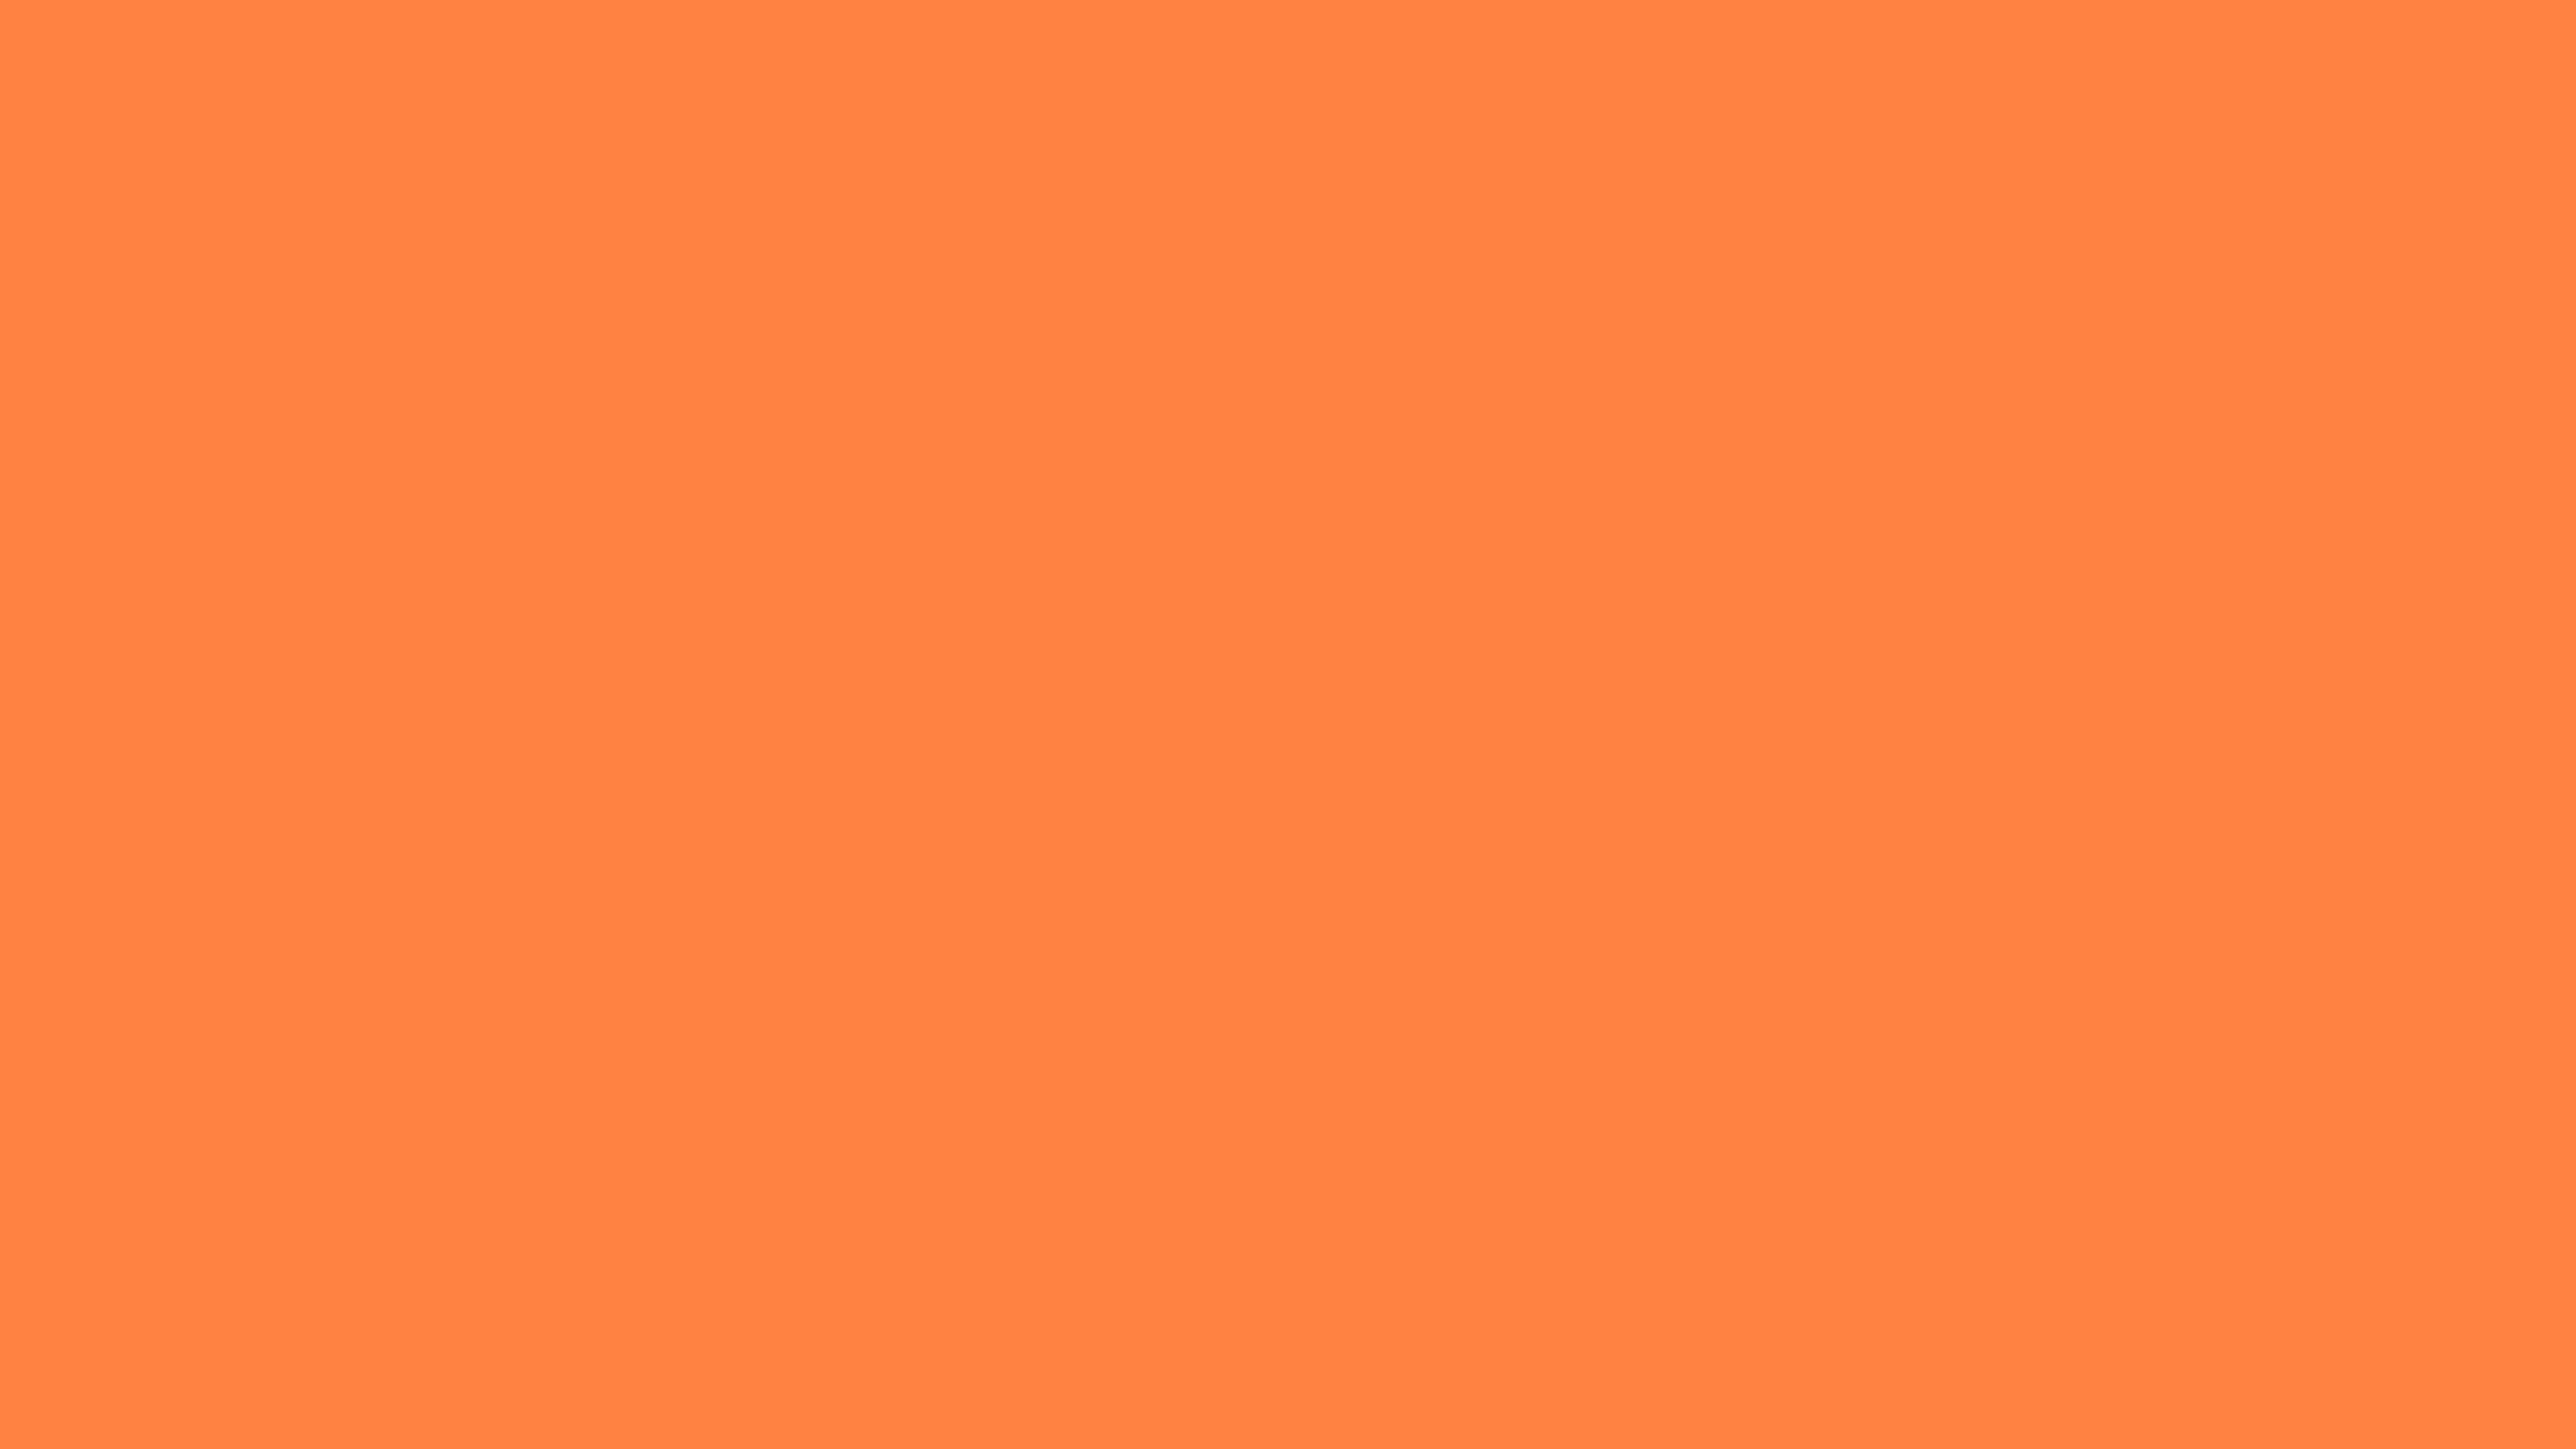 3840x2160 Mango Tango Solid Color Background